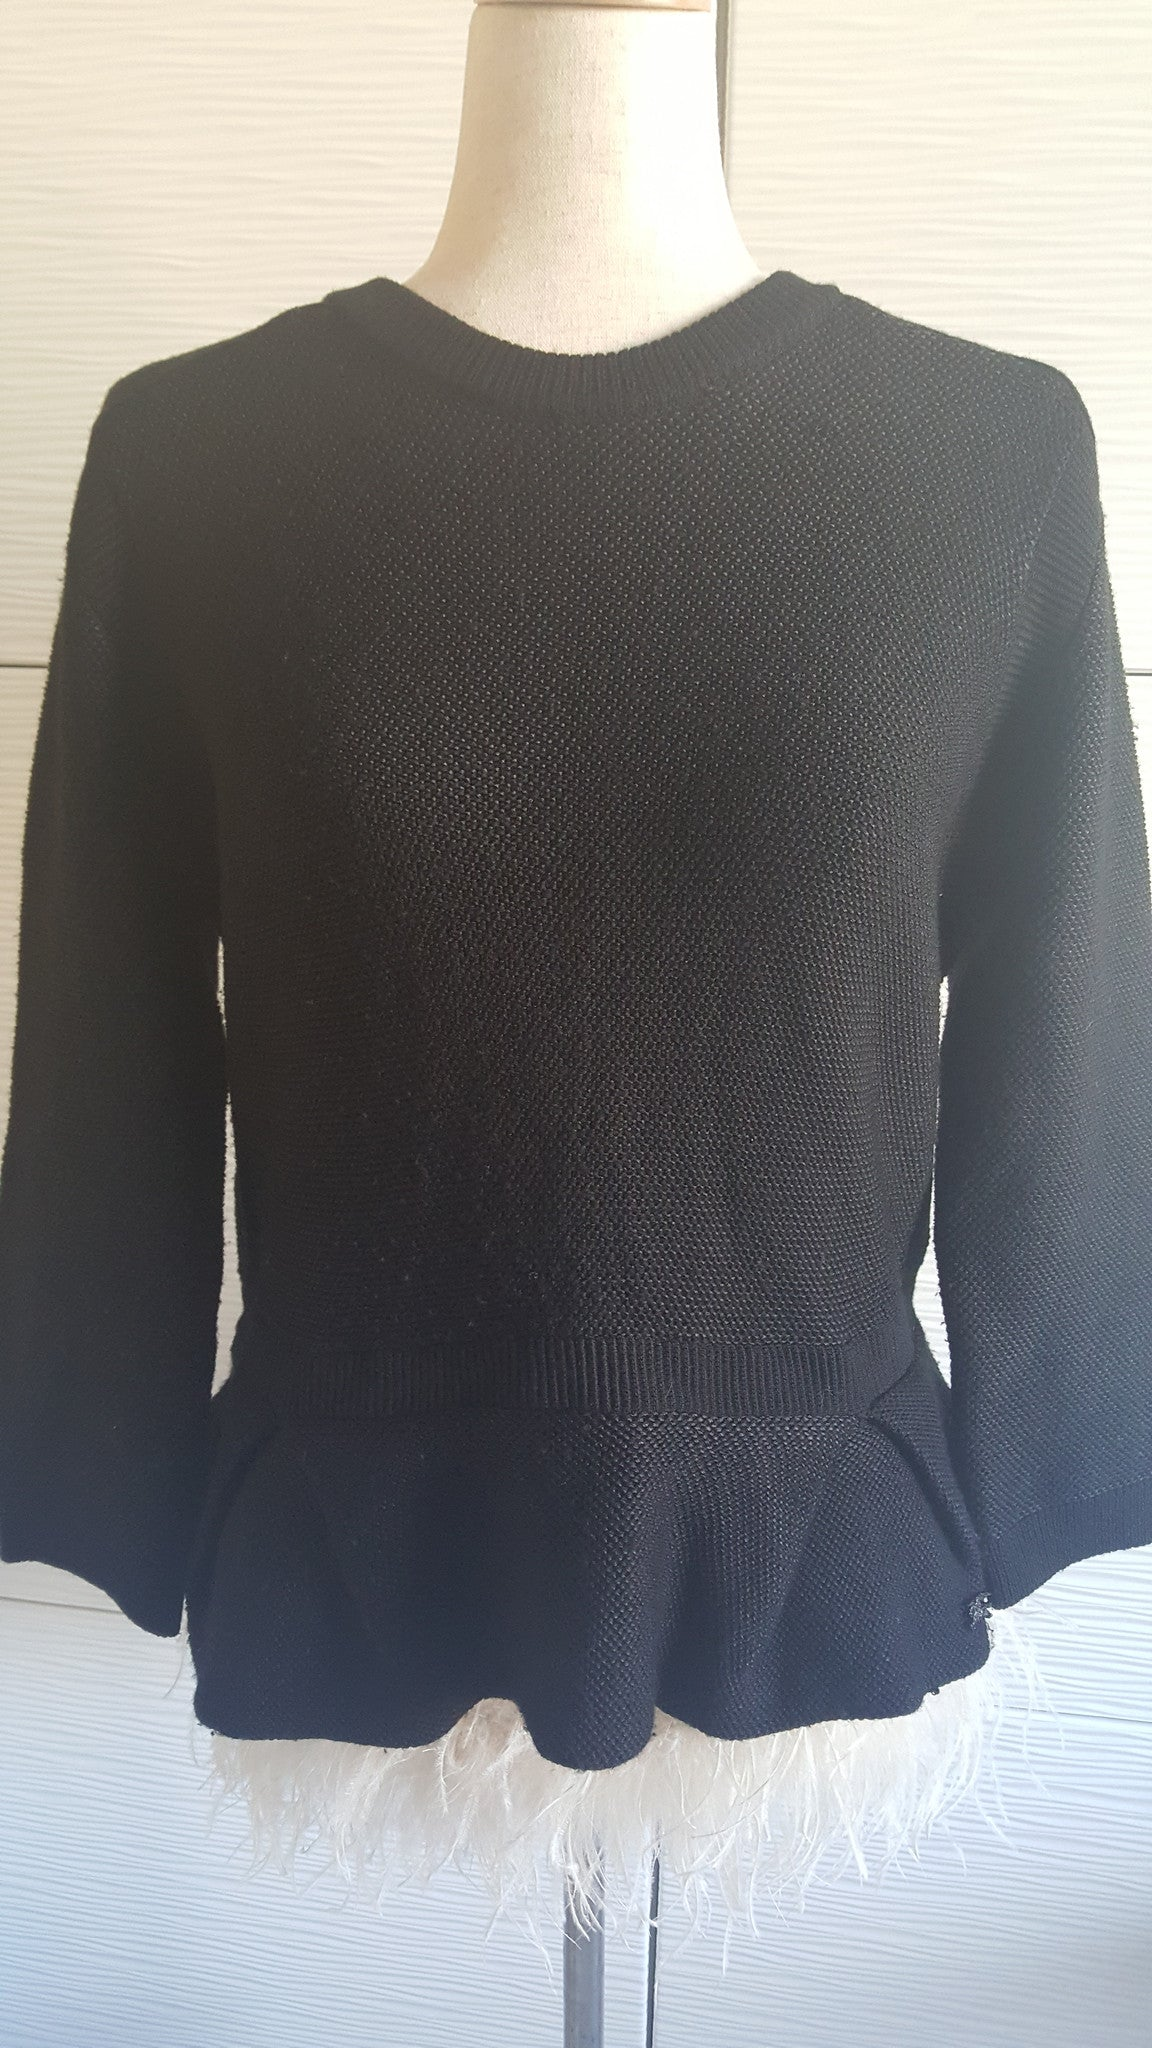 BURBERRY LONDON PEPLUM WOOL SWEATER - SIZE XL